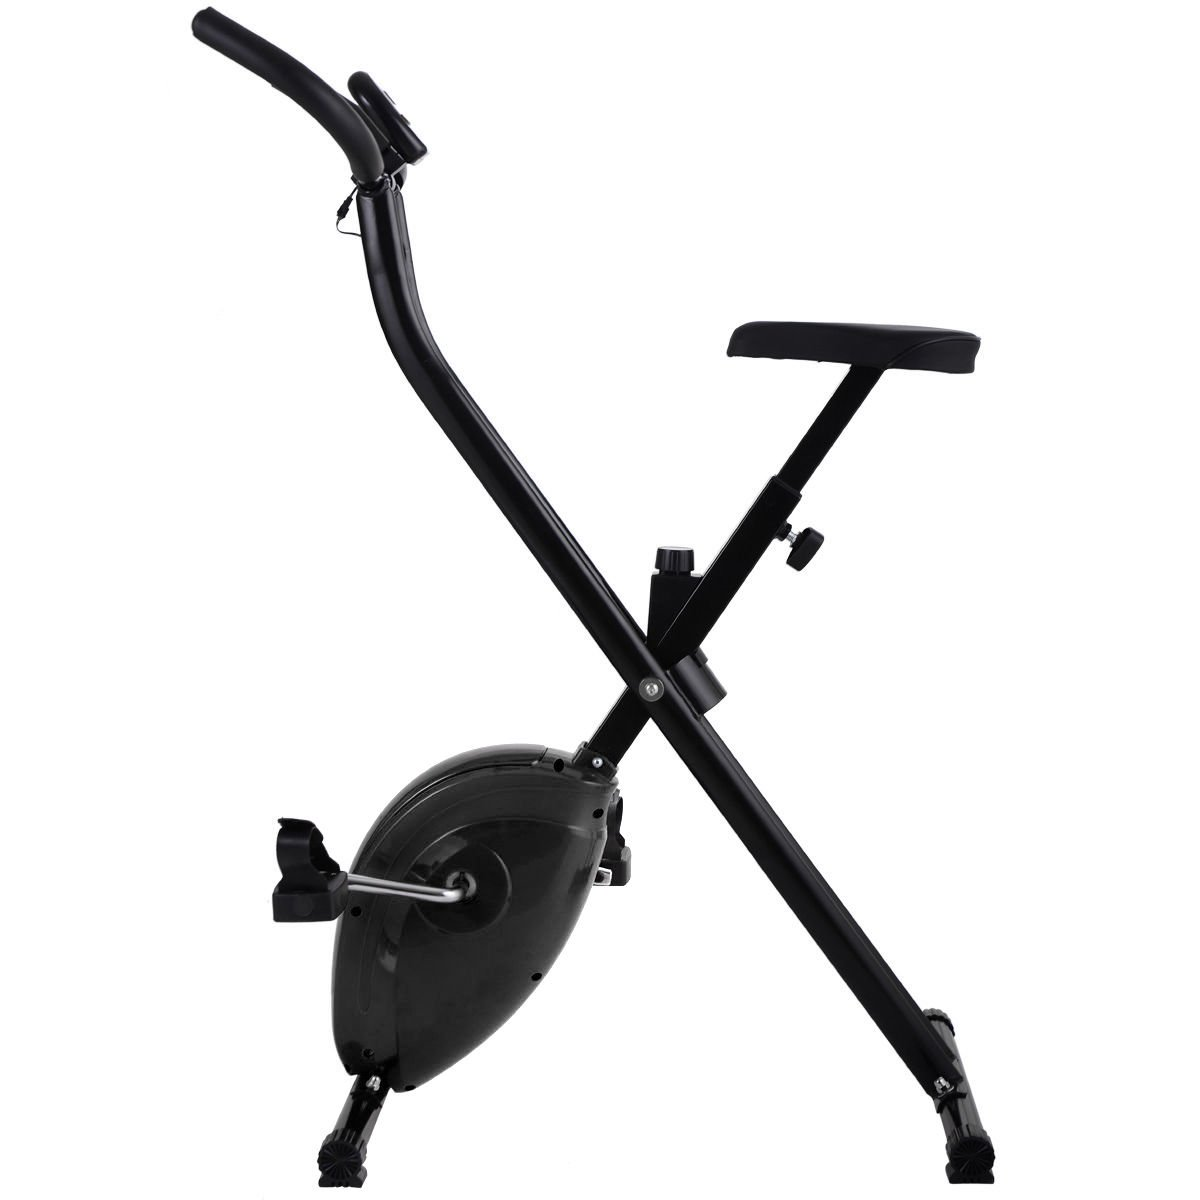 Folding Exercise Bike Home Magnetic Trainer Fitness Stationary Machine New - Black by Eight24hours (Image #2)